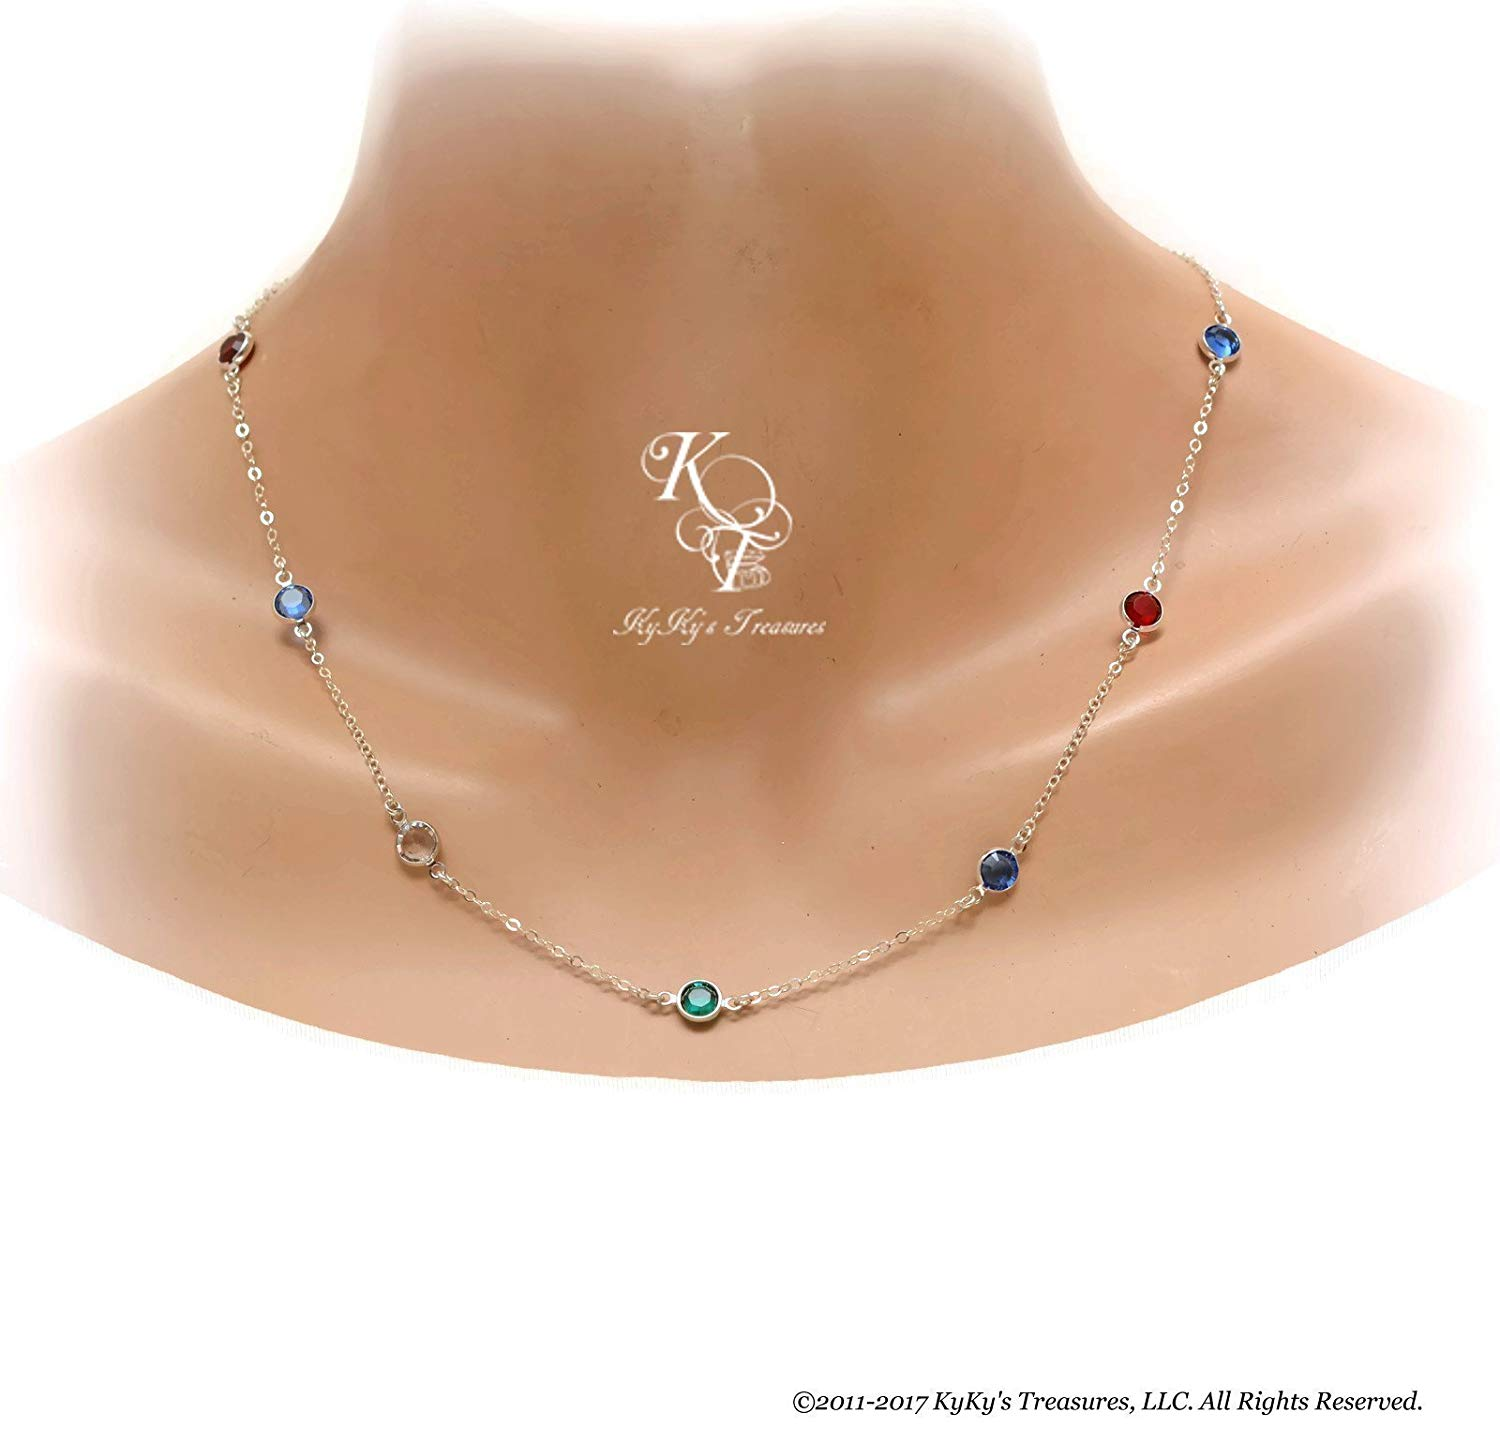 347701adde33b Cheap Birthstone Necklace For Mom, find Birthstone Necklace For Mom ...